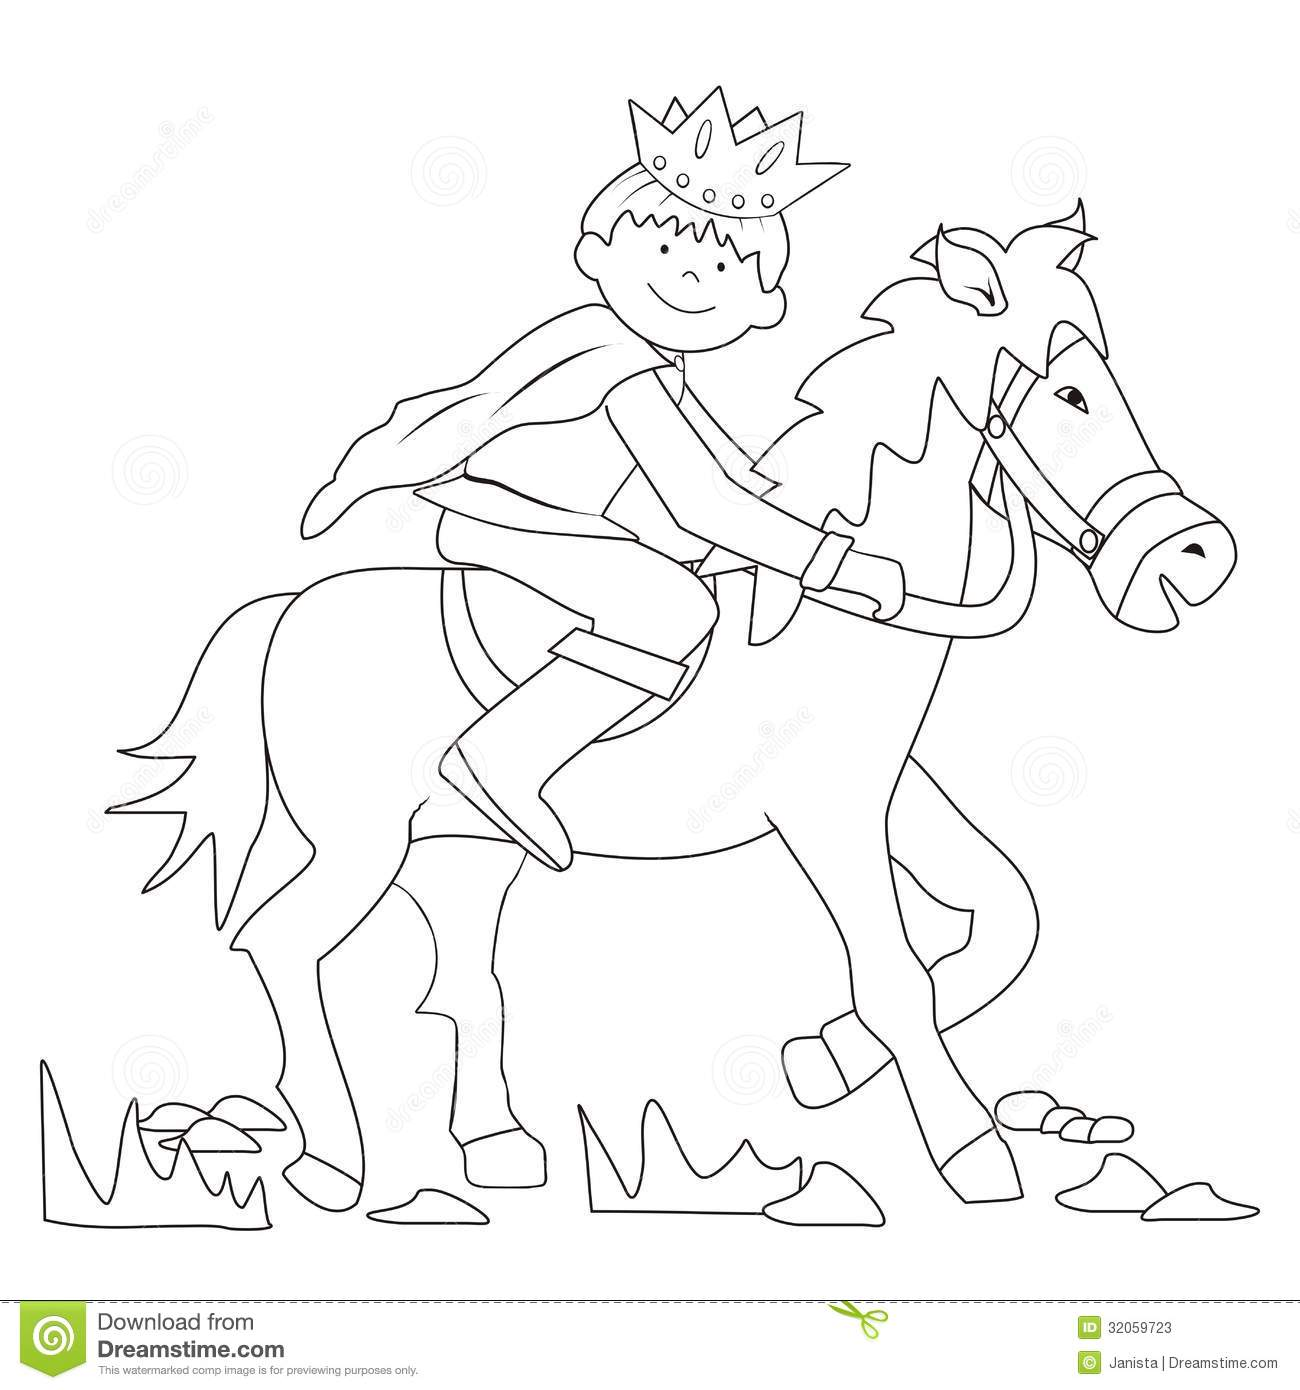 prince coloring - Prince Coloring Pages 2